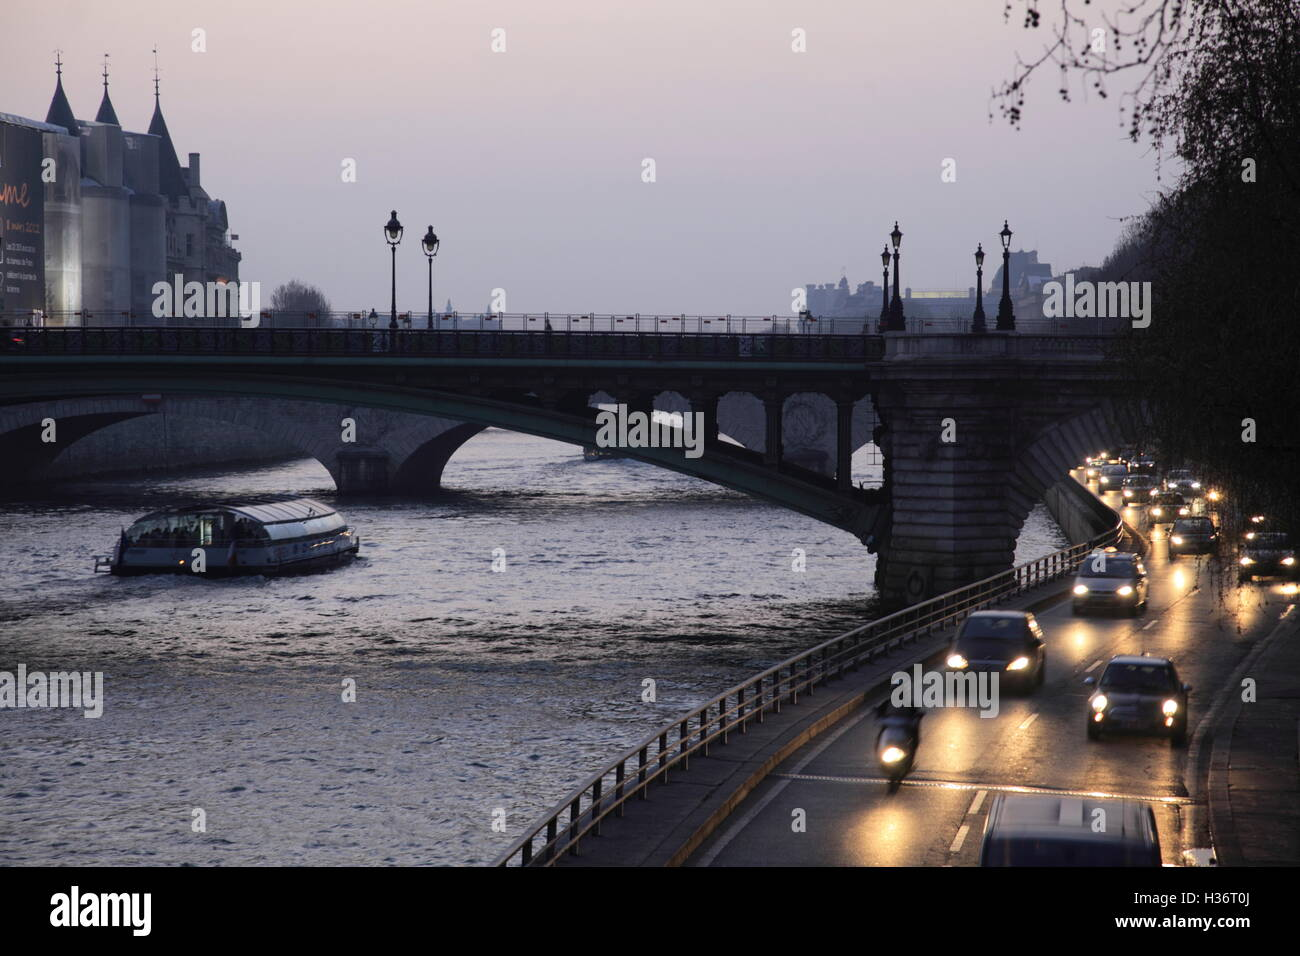 The twilight view of riverside traffics and Pont au Change over River Seine in background. Paris.France - Stock Image